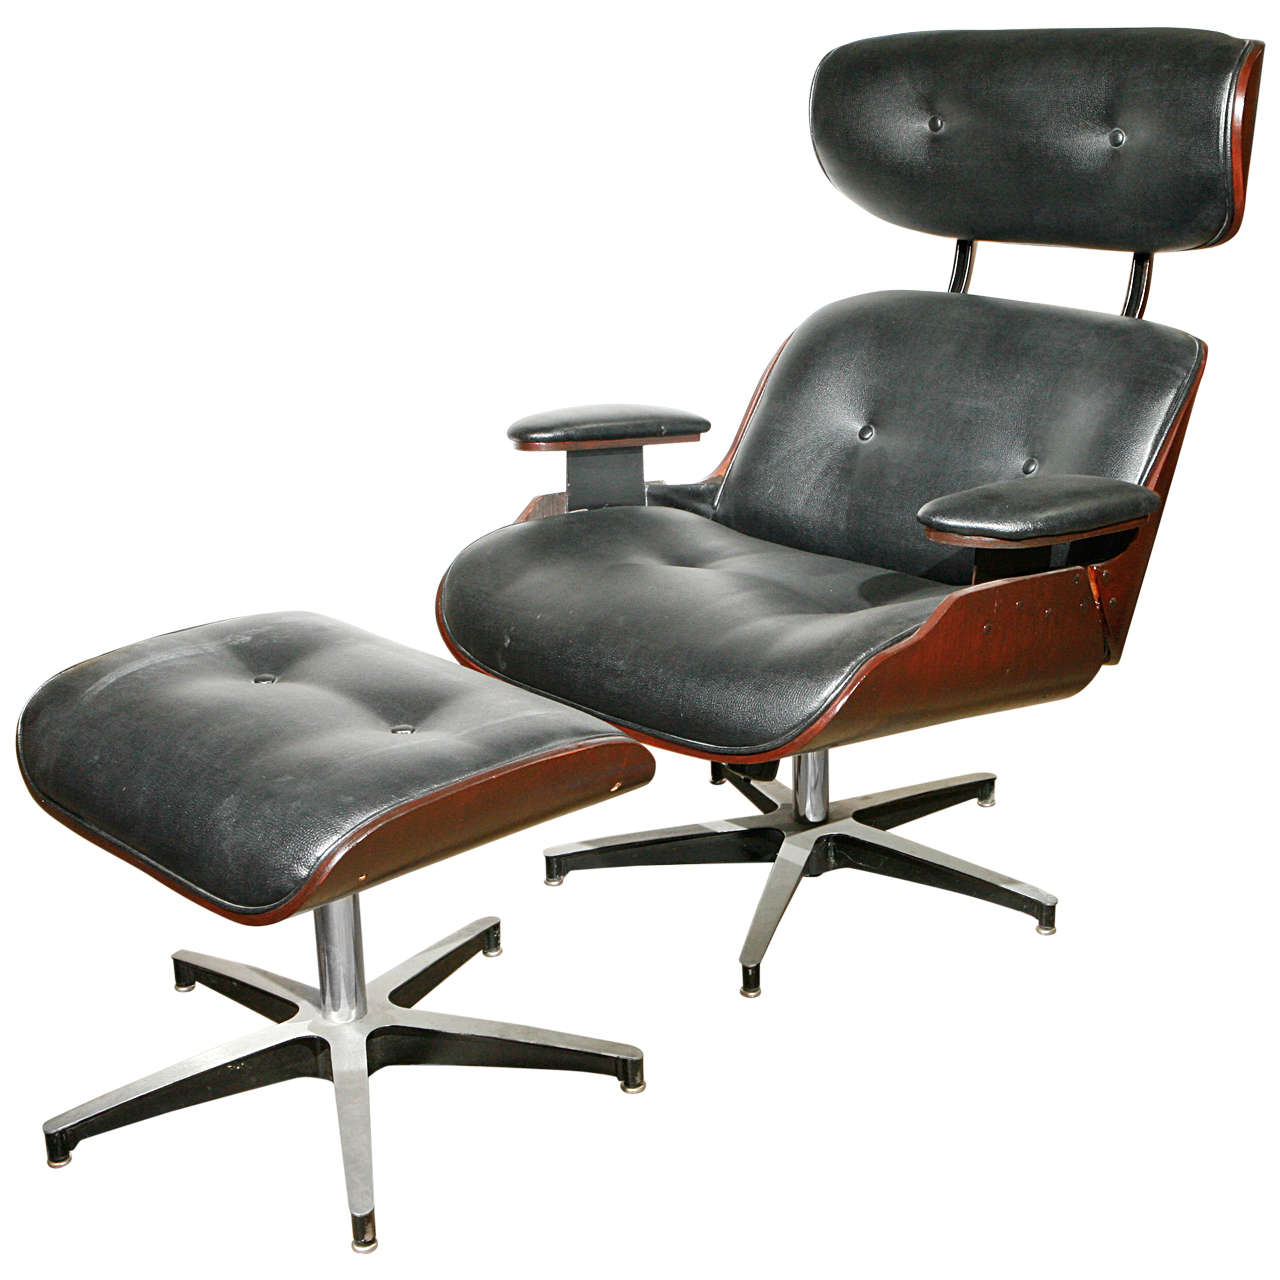 Lounge chair and ottoman in the eames style by selig at 1stdibs - Selig eames chair ...